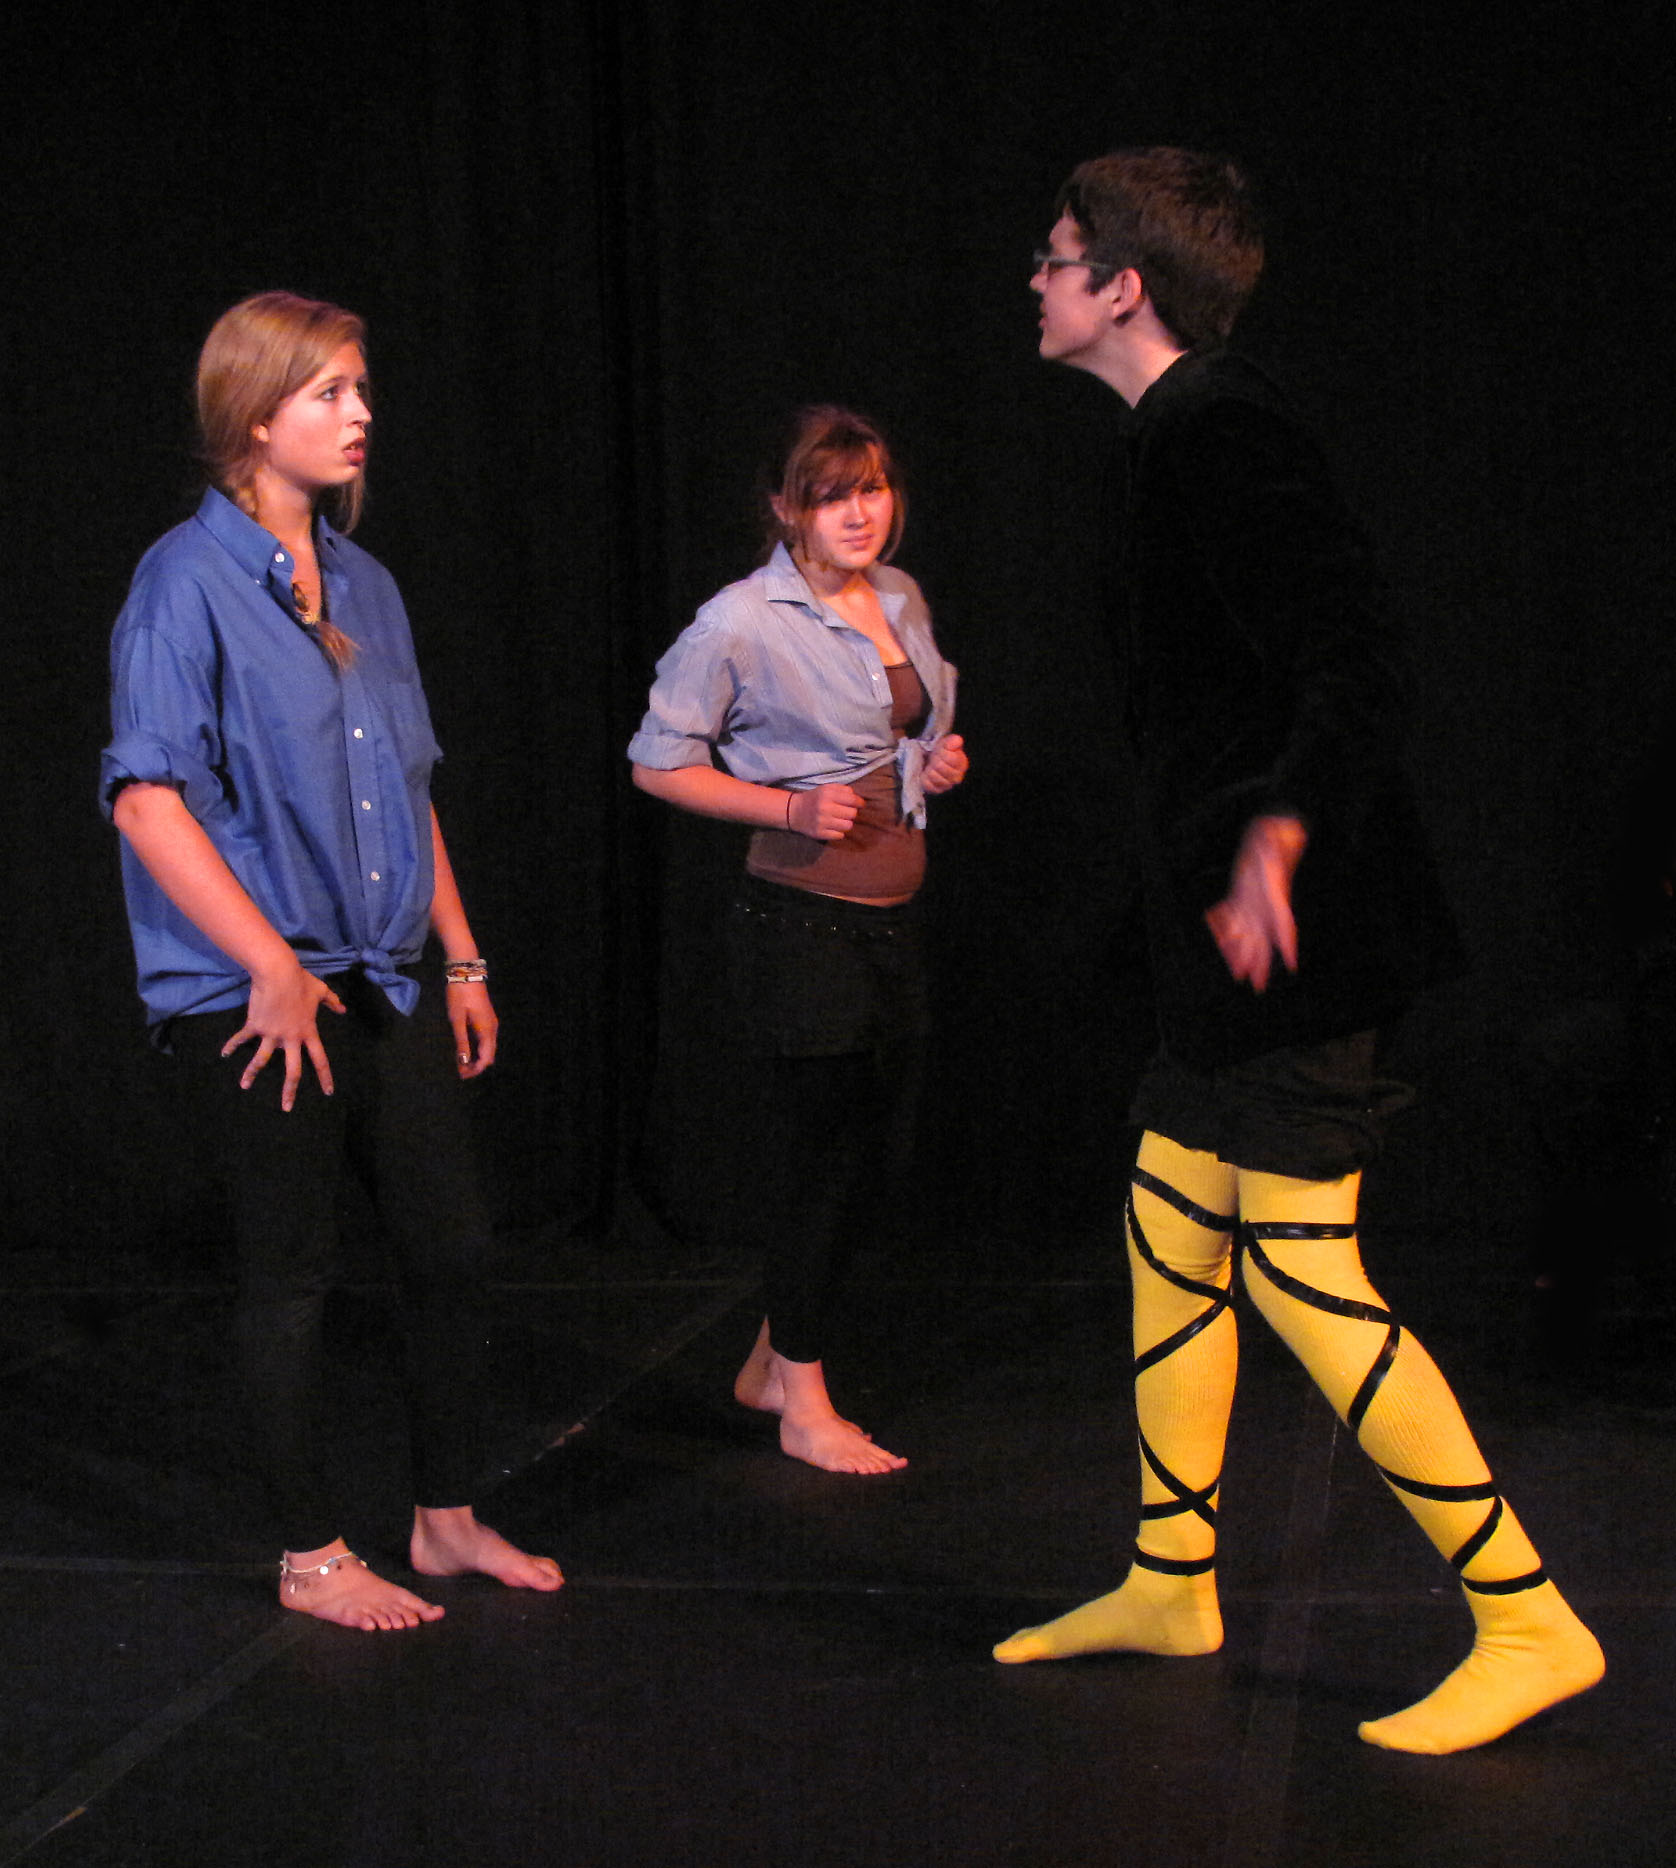 twelfth night disguises Free essay: different forms of disguise and deception in twelfth night twelfth night is said to be shakespeare's most complete comedy as in most comedies.